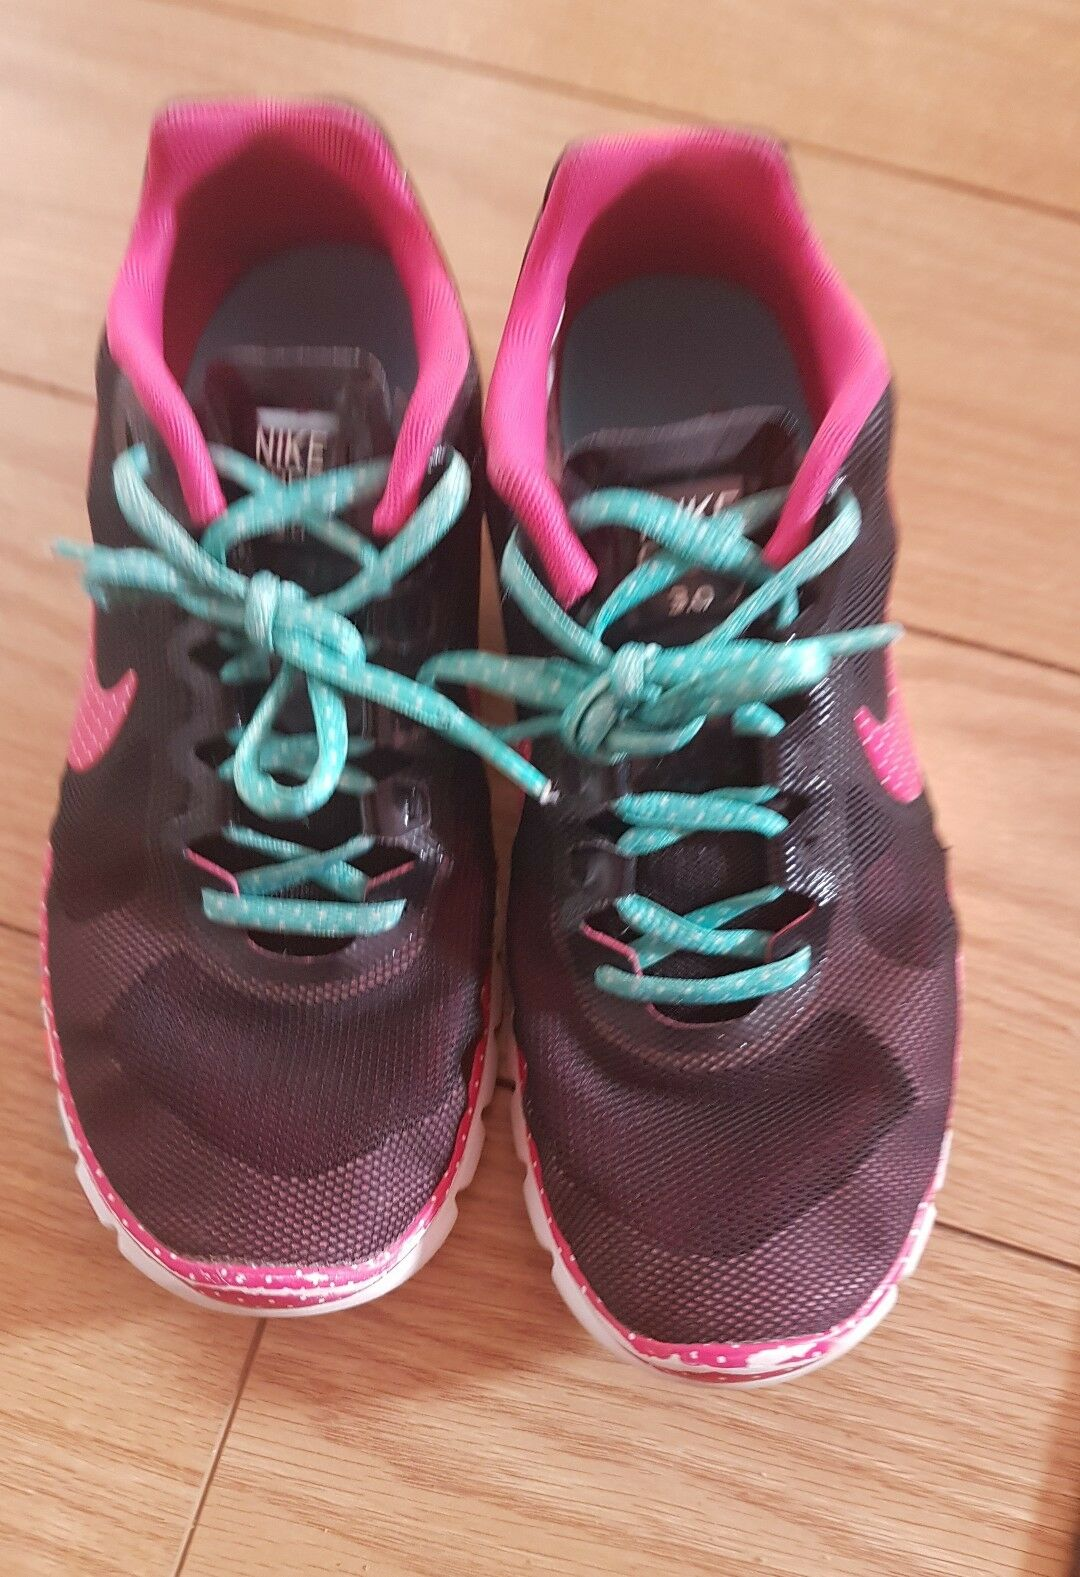 WOMENS LADIES NIKE FREE 3.0 RUNNING GYM TRAINERS SIZE  The latest discount shoes for men and women